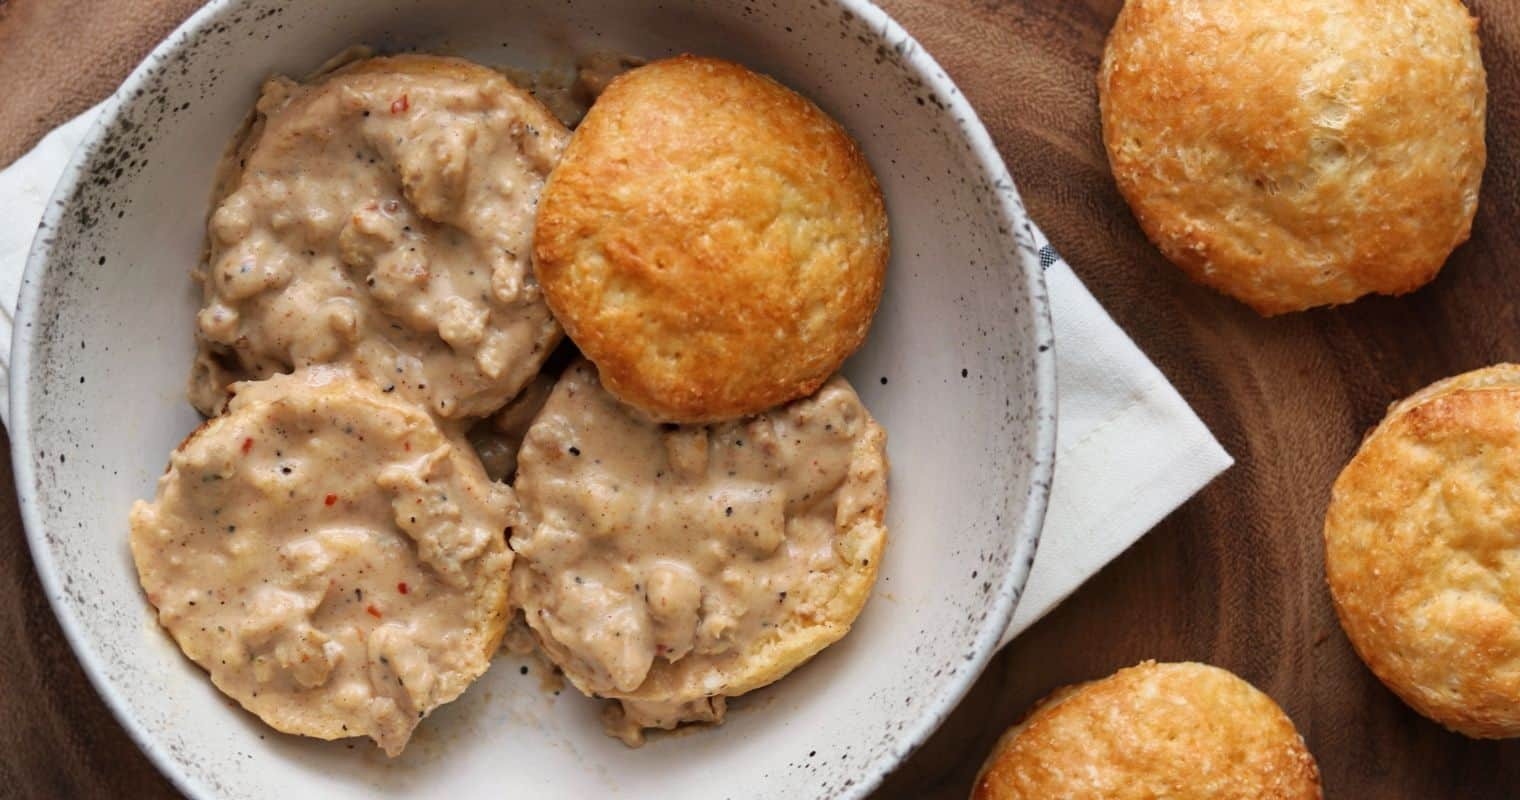 healthy sausage gravy on top of biscuits in a bowl